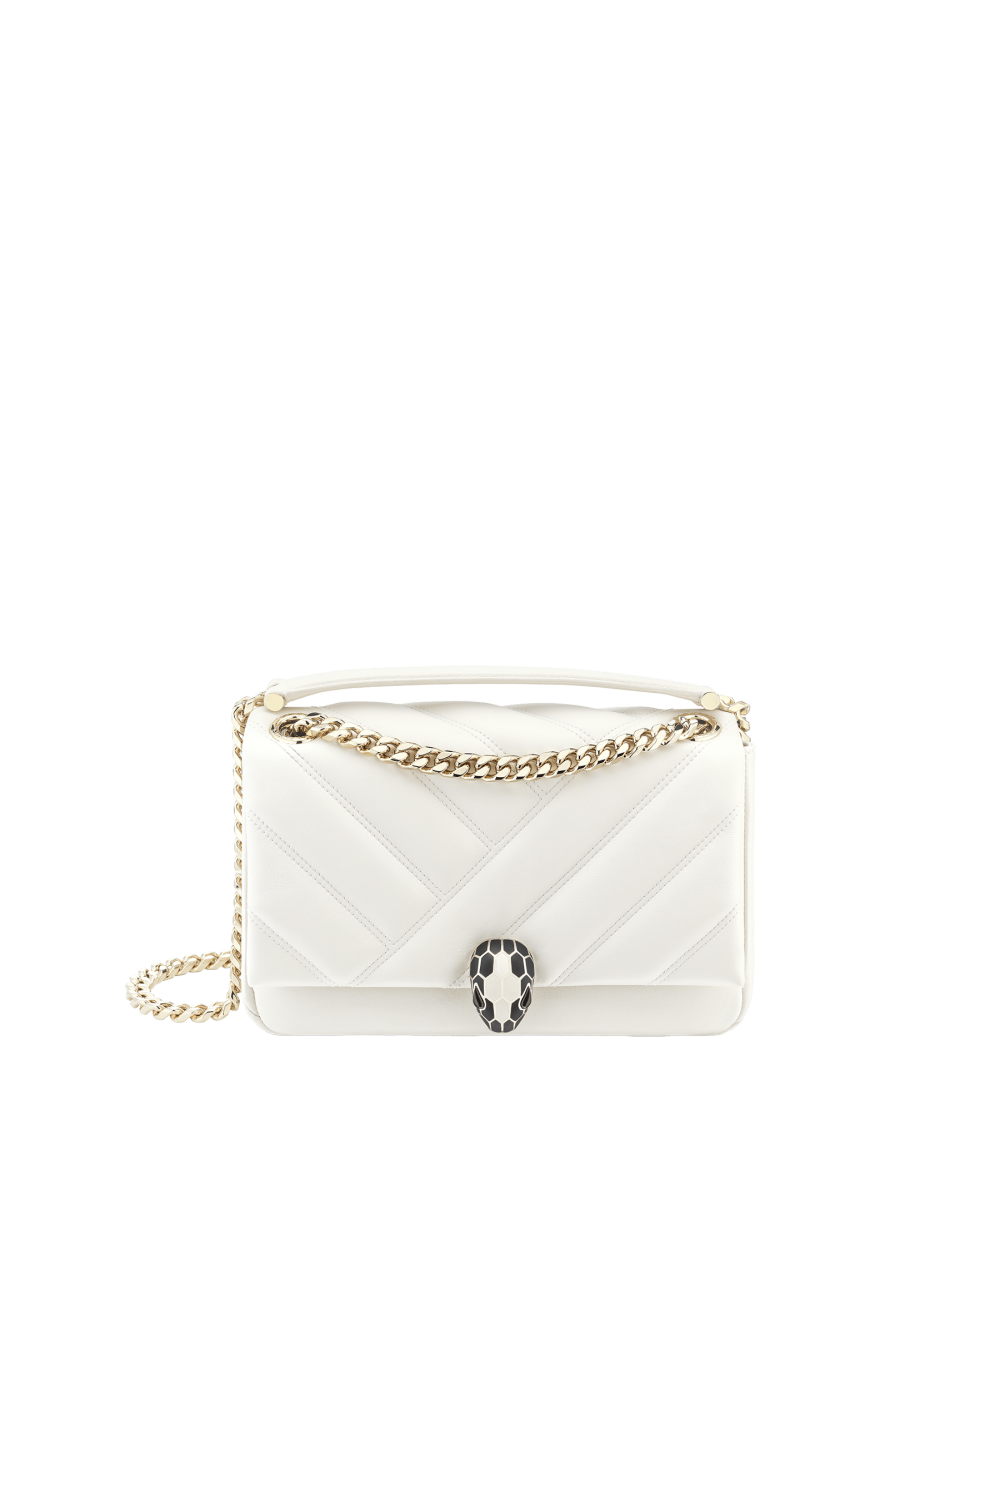 Bulgari Serpenti Cabochon Shoulder Bag White